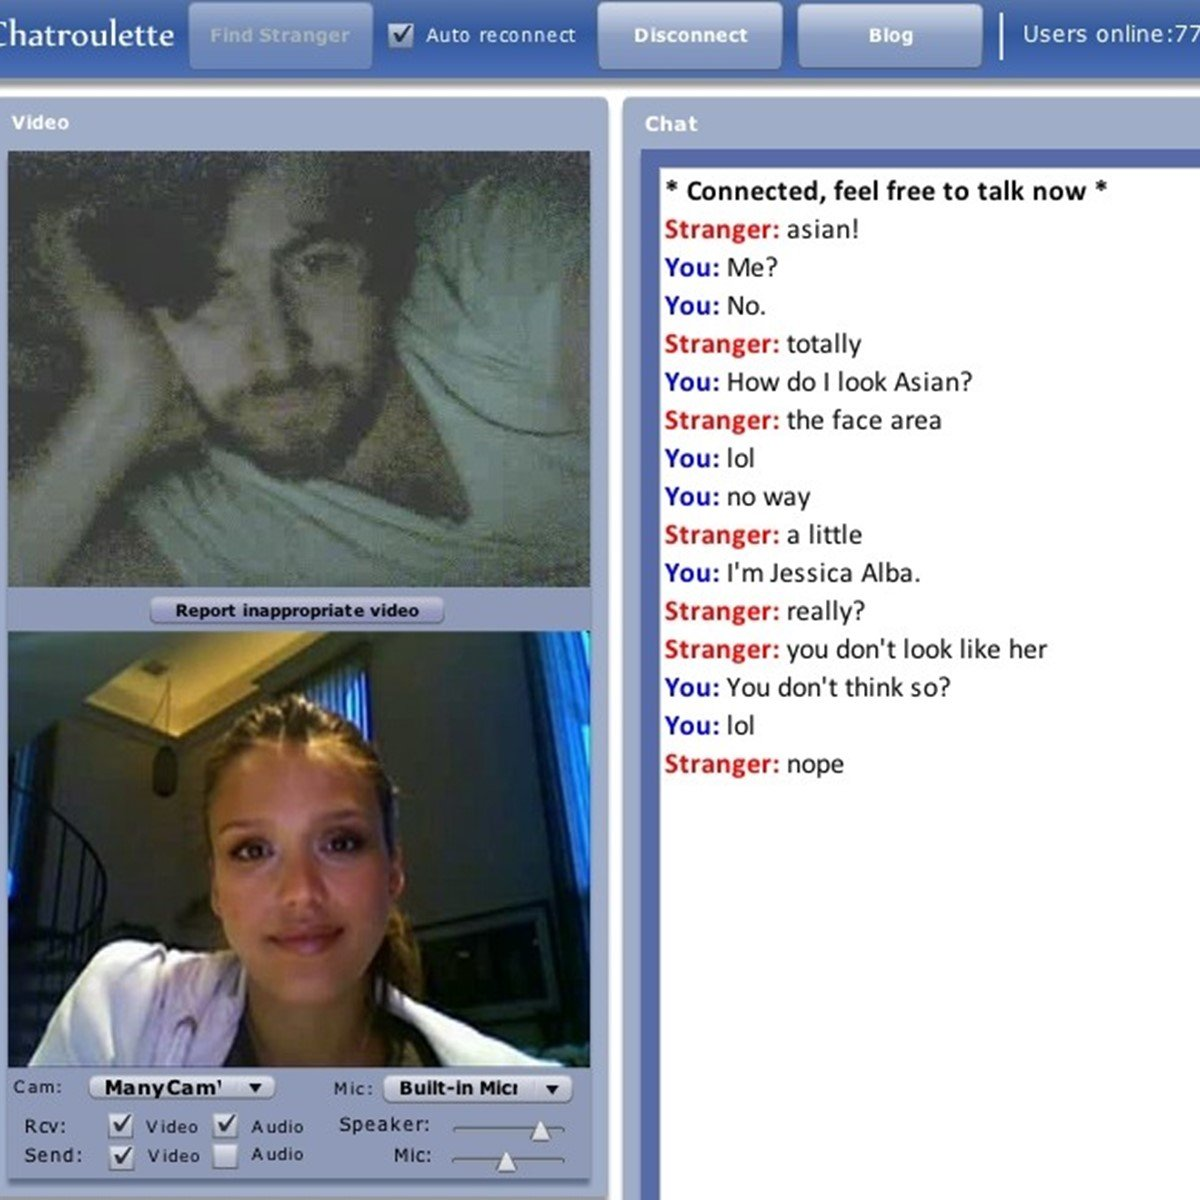 chatroulette alternativ